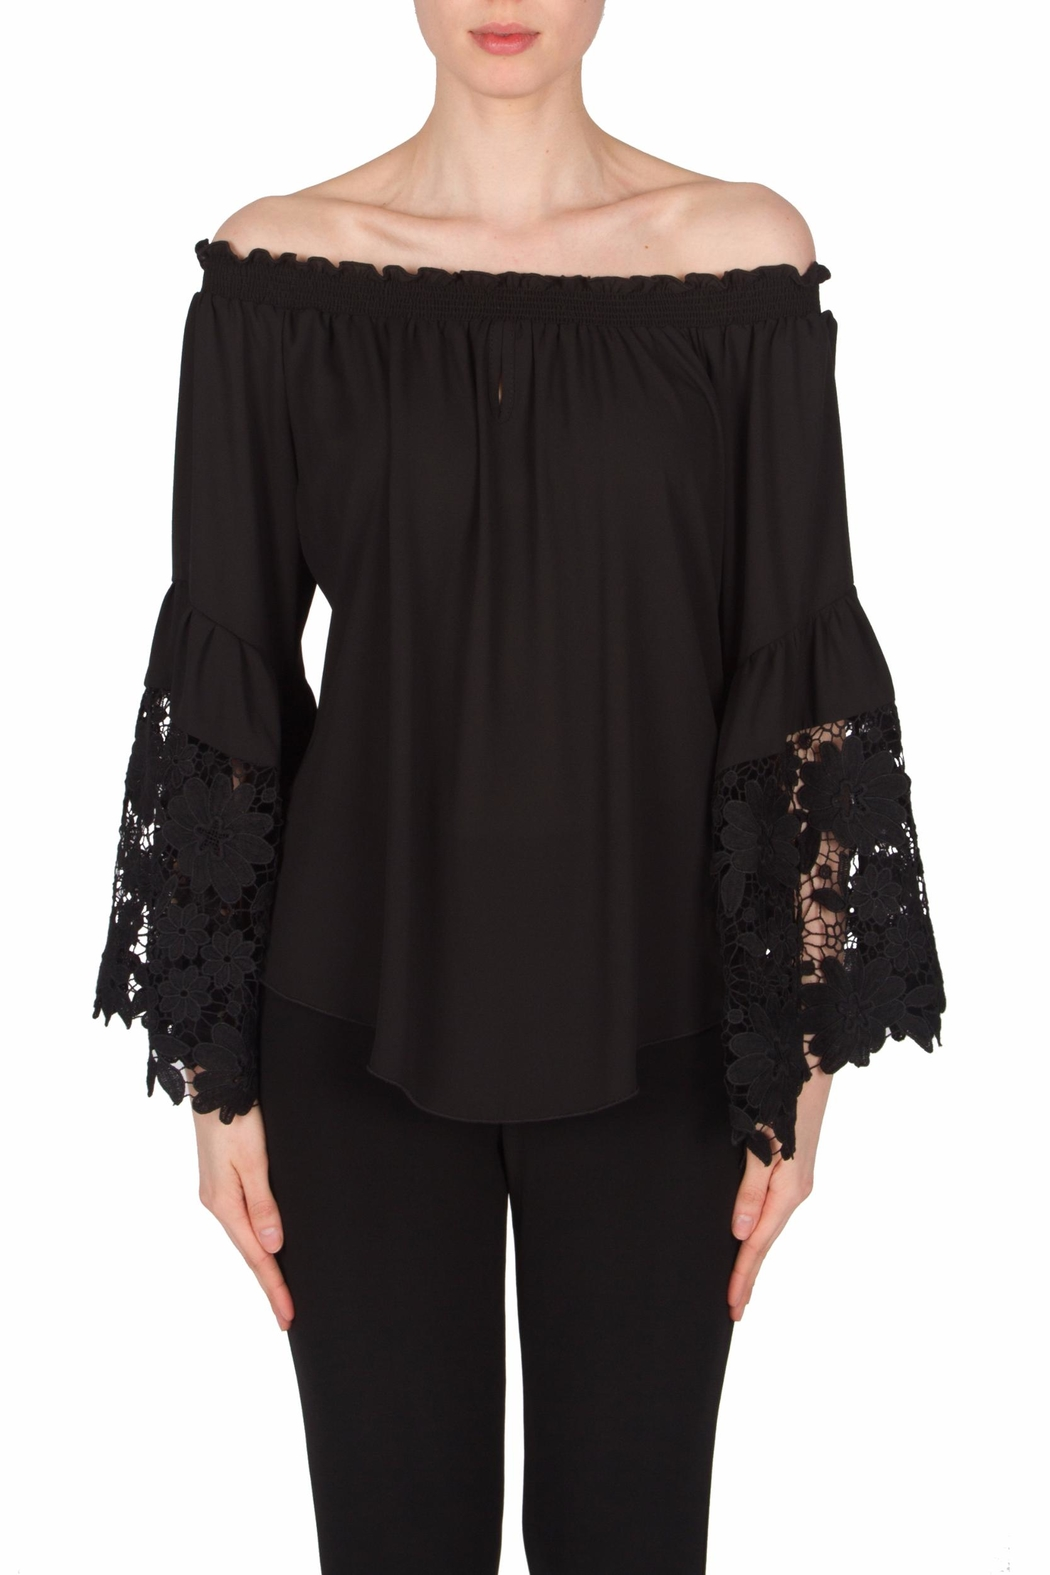 Joseph Ribkoff Bell Sleeves Top - Main Image